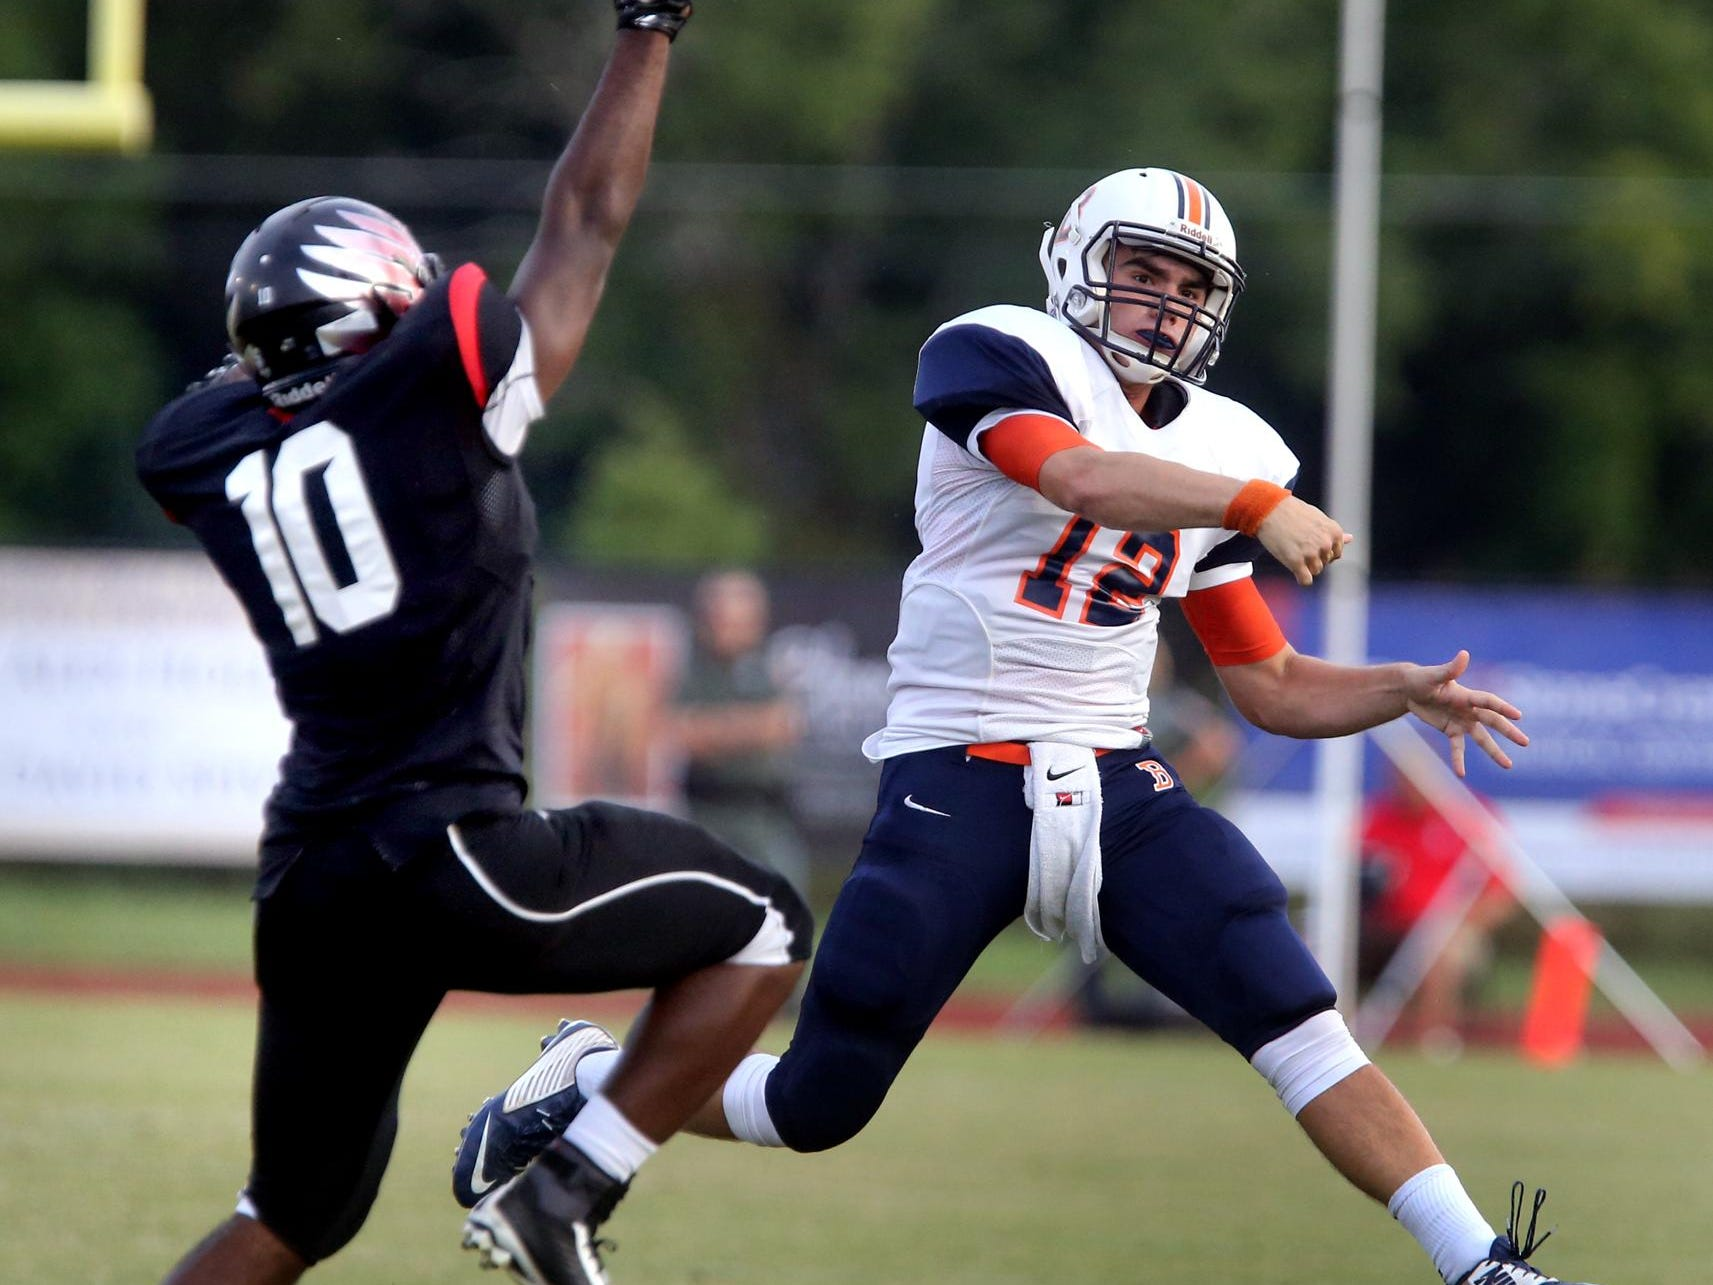 Blackman's Miller Armstrong throws a pass in the jamboree. Armstrong replaces Jauan Jennings at quarterback this fall.